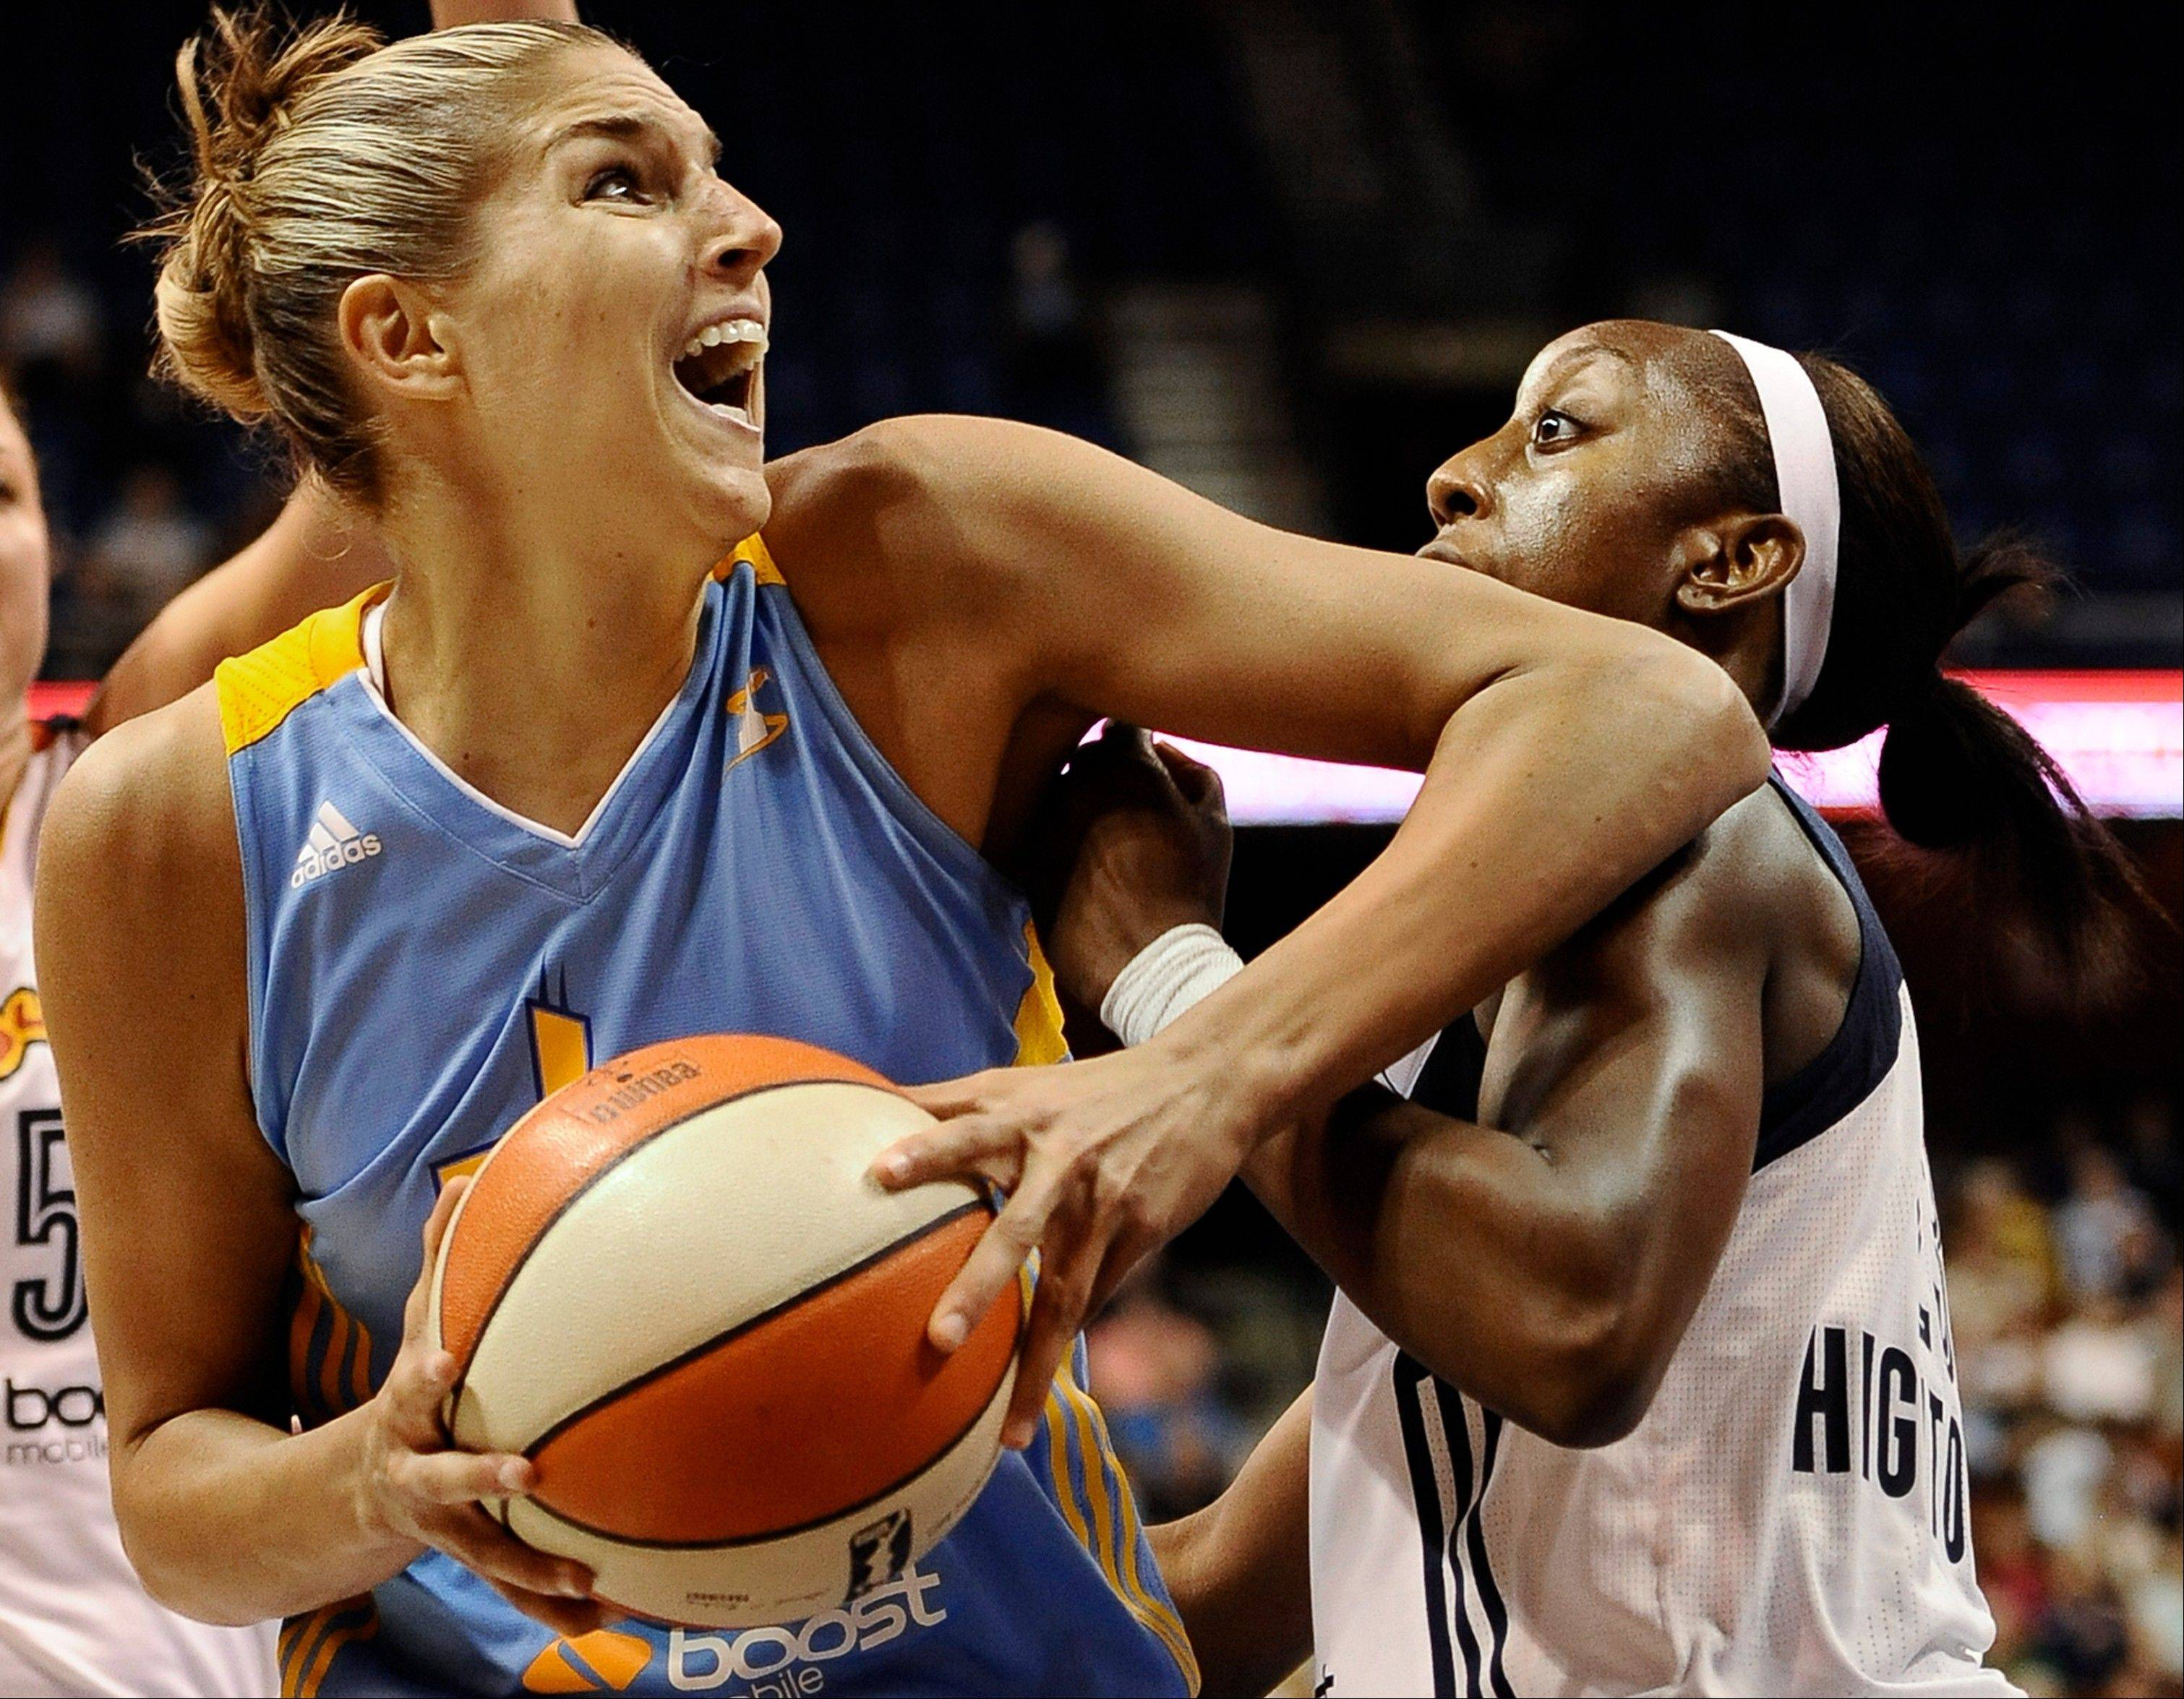 FILE - In this Aug. 9, 2013, file photo, Chicago Sky's Elena Delle Donne, left, is guarded by Connecticut Sun's Allison Hightower during the first half of a WNBA basketball game in Uncasville, Conn. Delle Donne led Chicago to its first postseason berth in franchise history and hopes to help the Sky defeat defending WNBA champion, Indiana Fever, in the opening round.